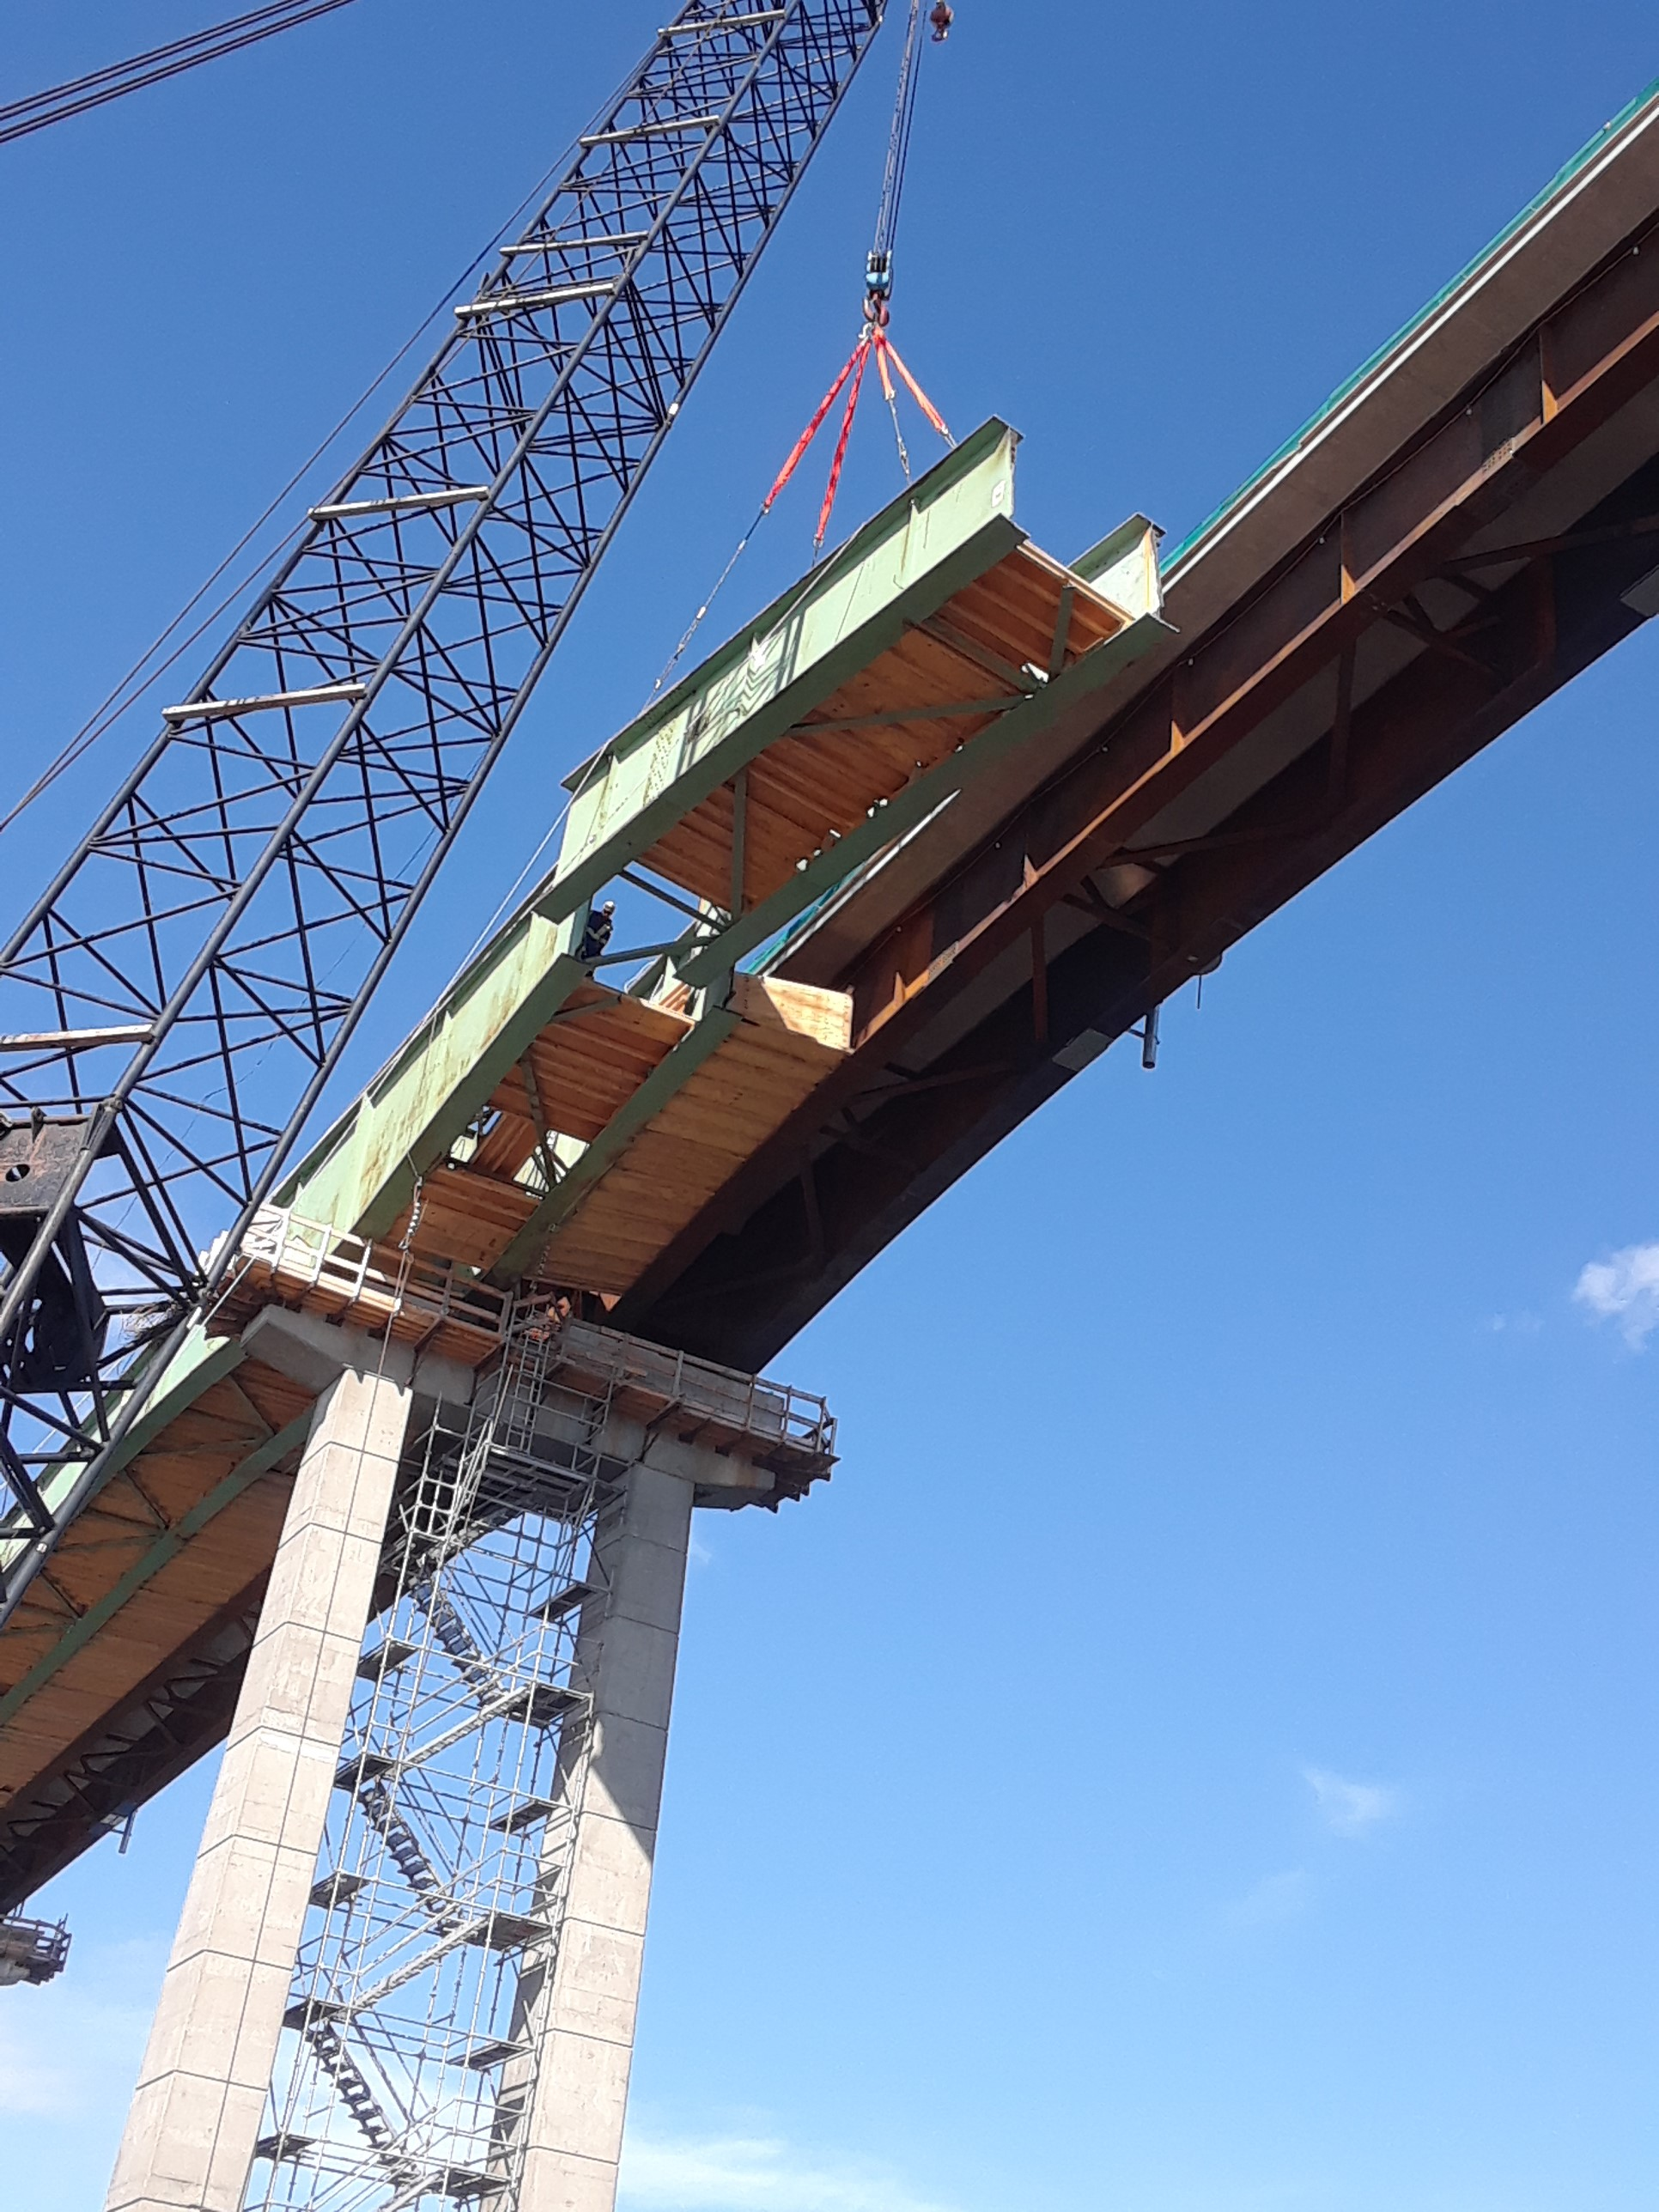 Second piece of girder being removed